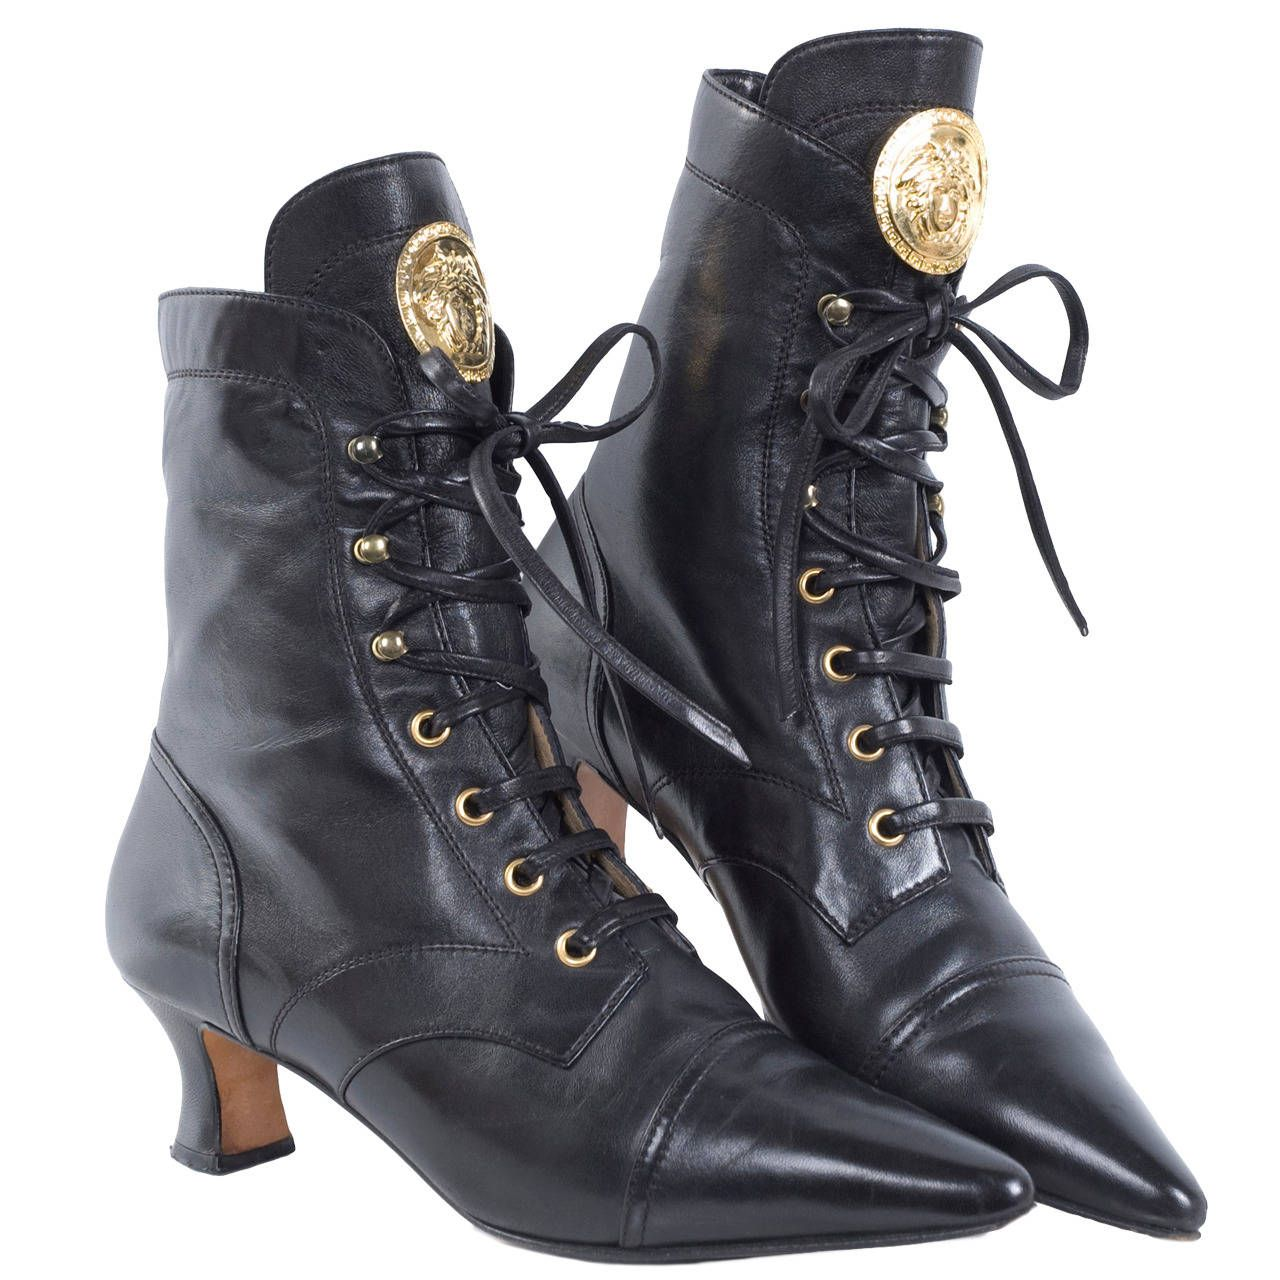 80 S Gianni Versace Boots 1stdibs Com Versace Boots Boots Fashion